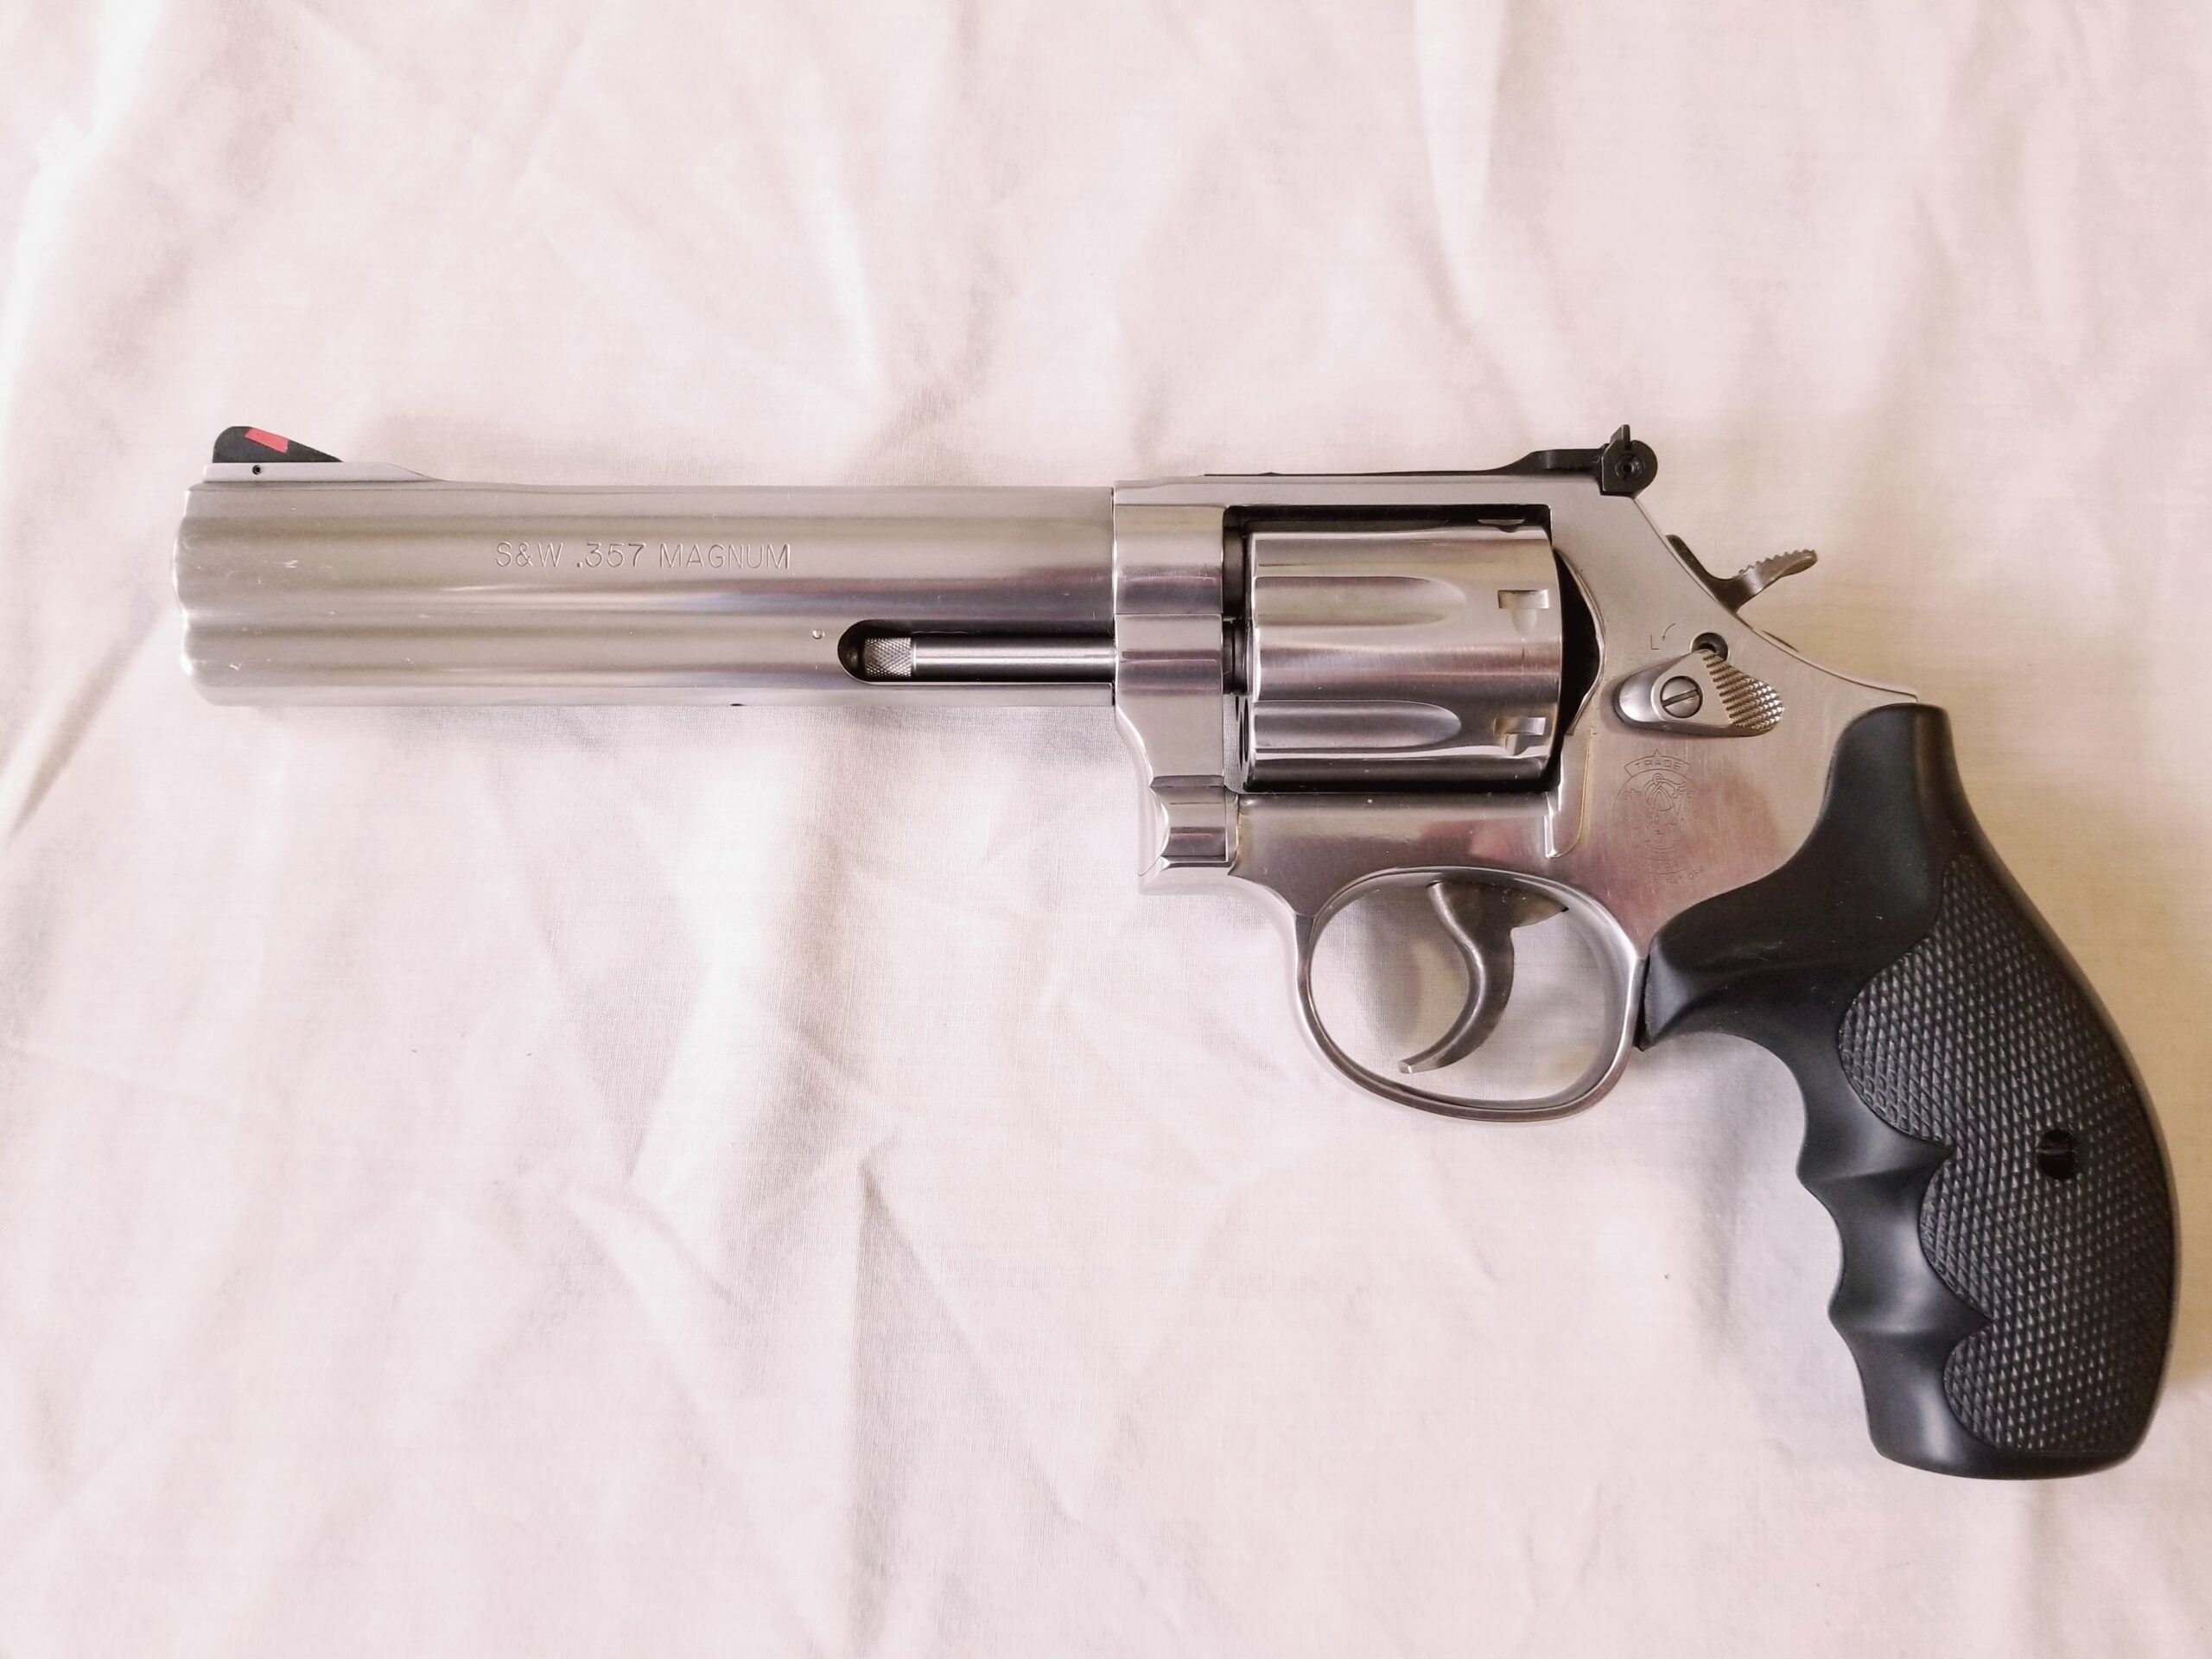 Smith and Wesson Model 686-6 .357 Magnum